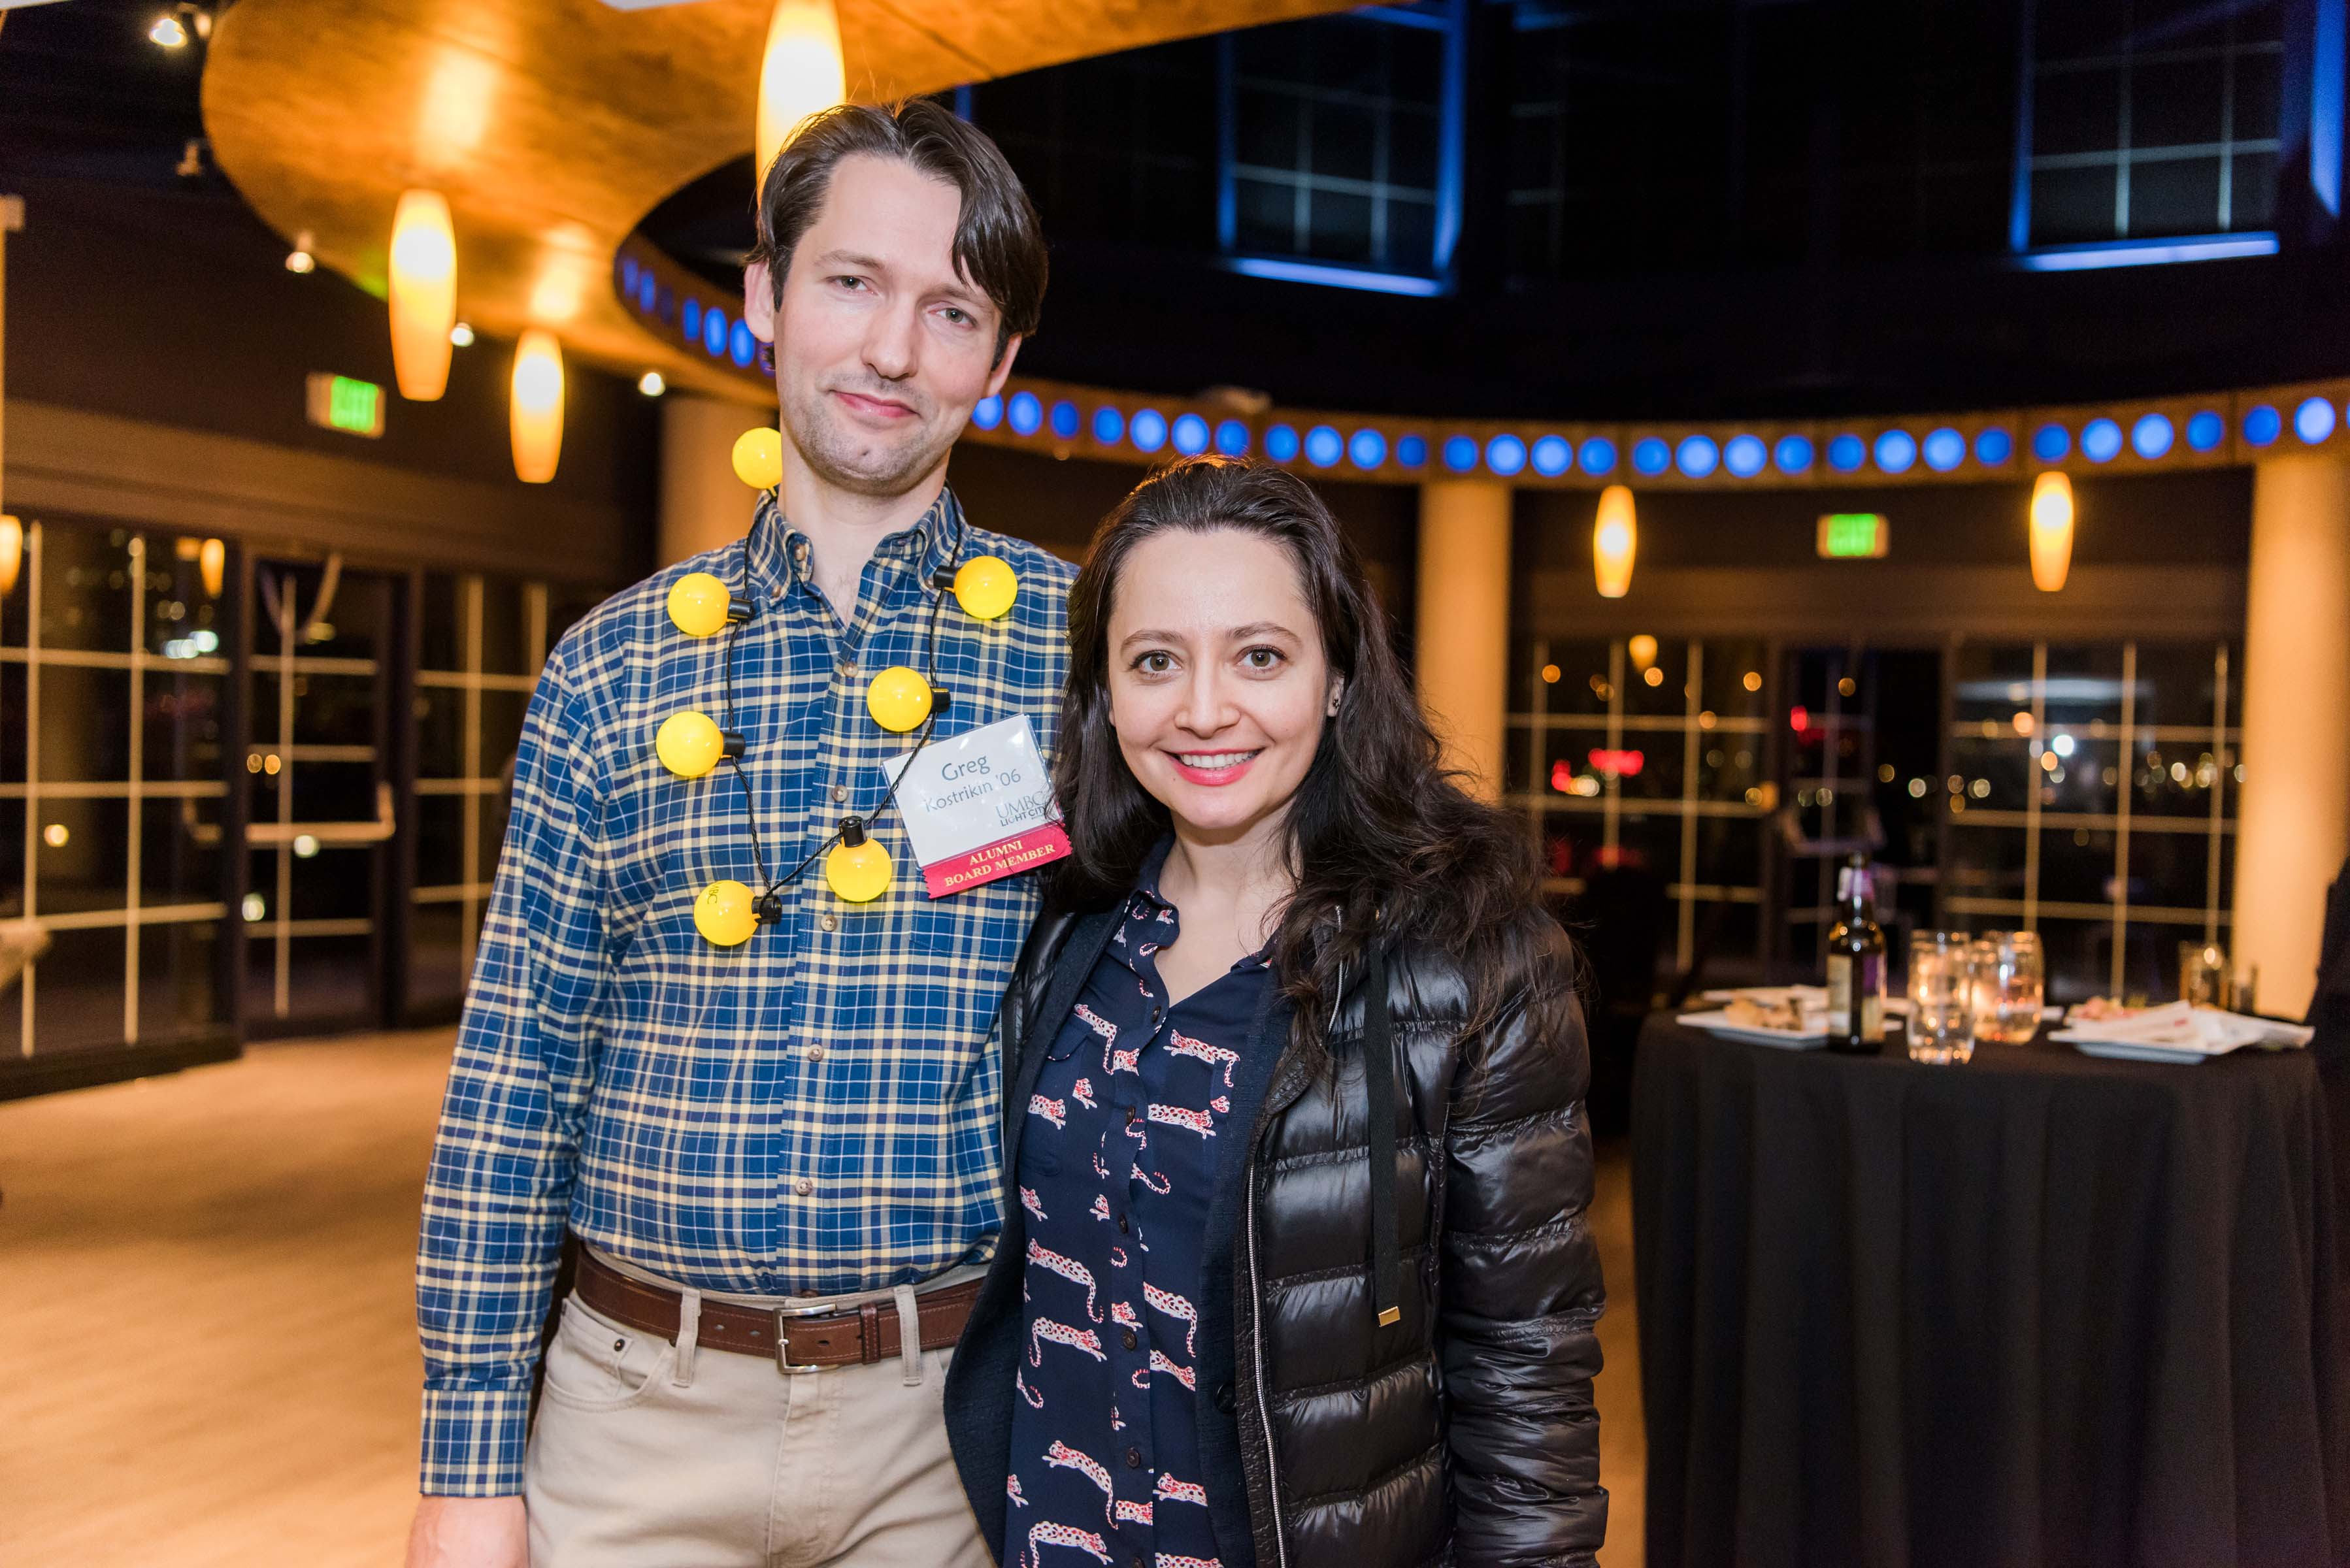 Two people pose together for picture at pier reception